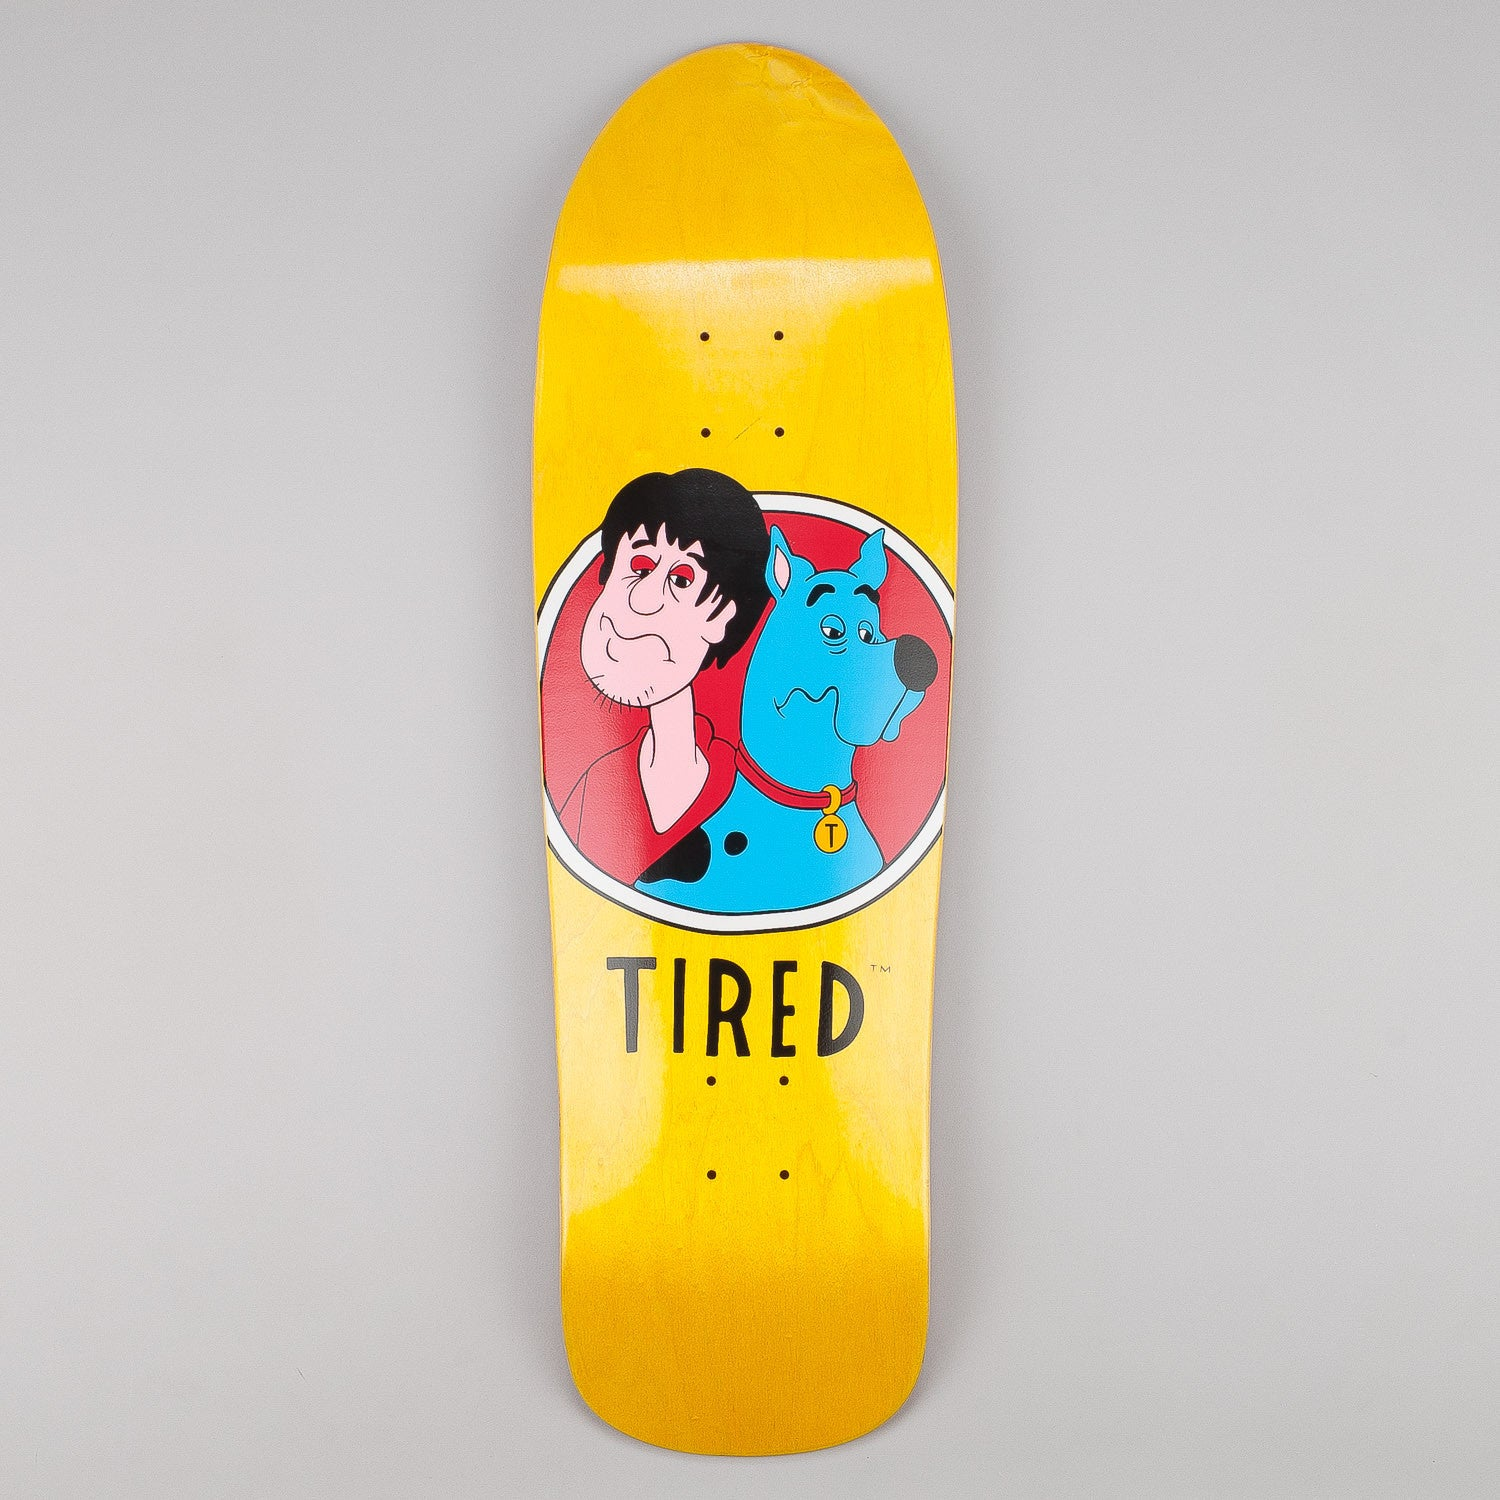 Tired Scrooby Deck 9.5""